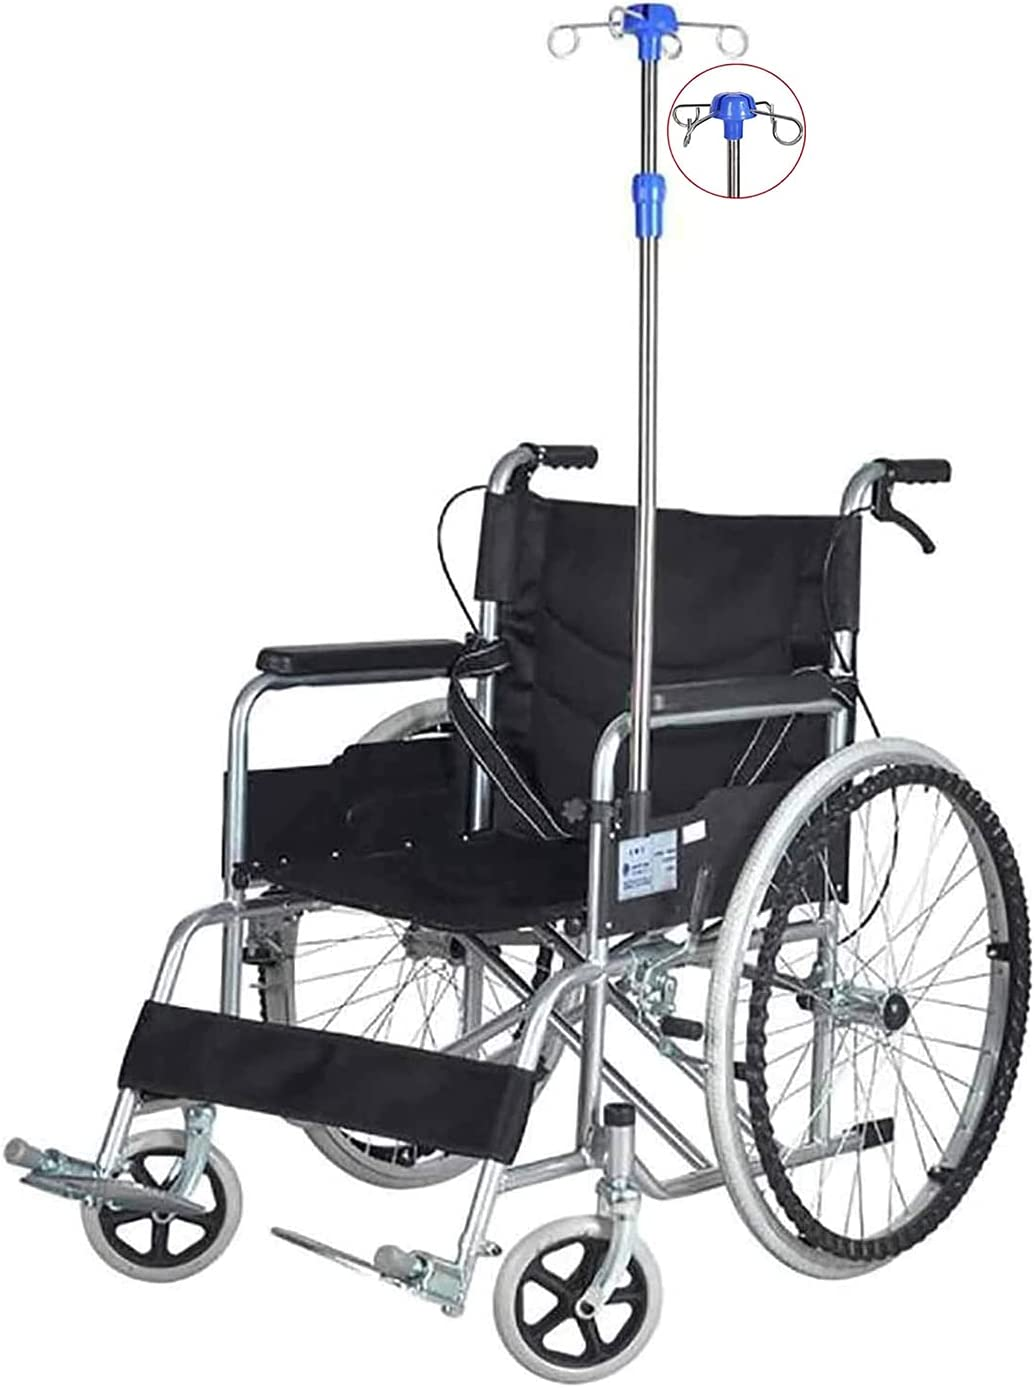 IV Pole High Max 72% OFF material Drip Stand for Special Wheelchair Sta Infusion